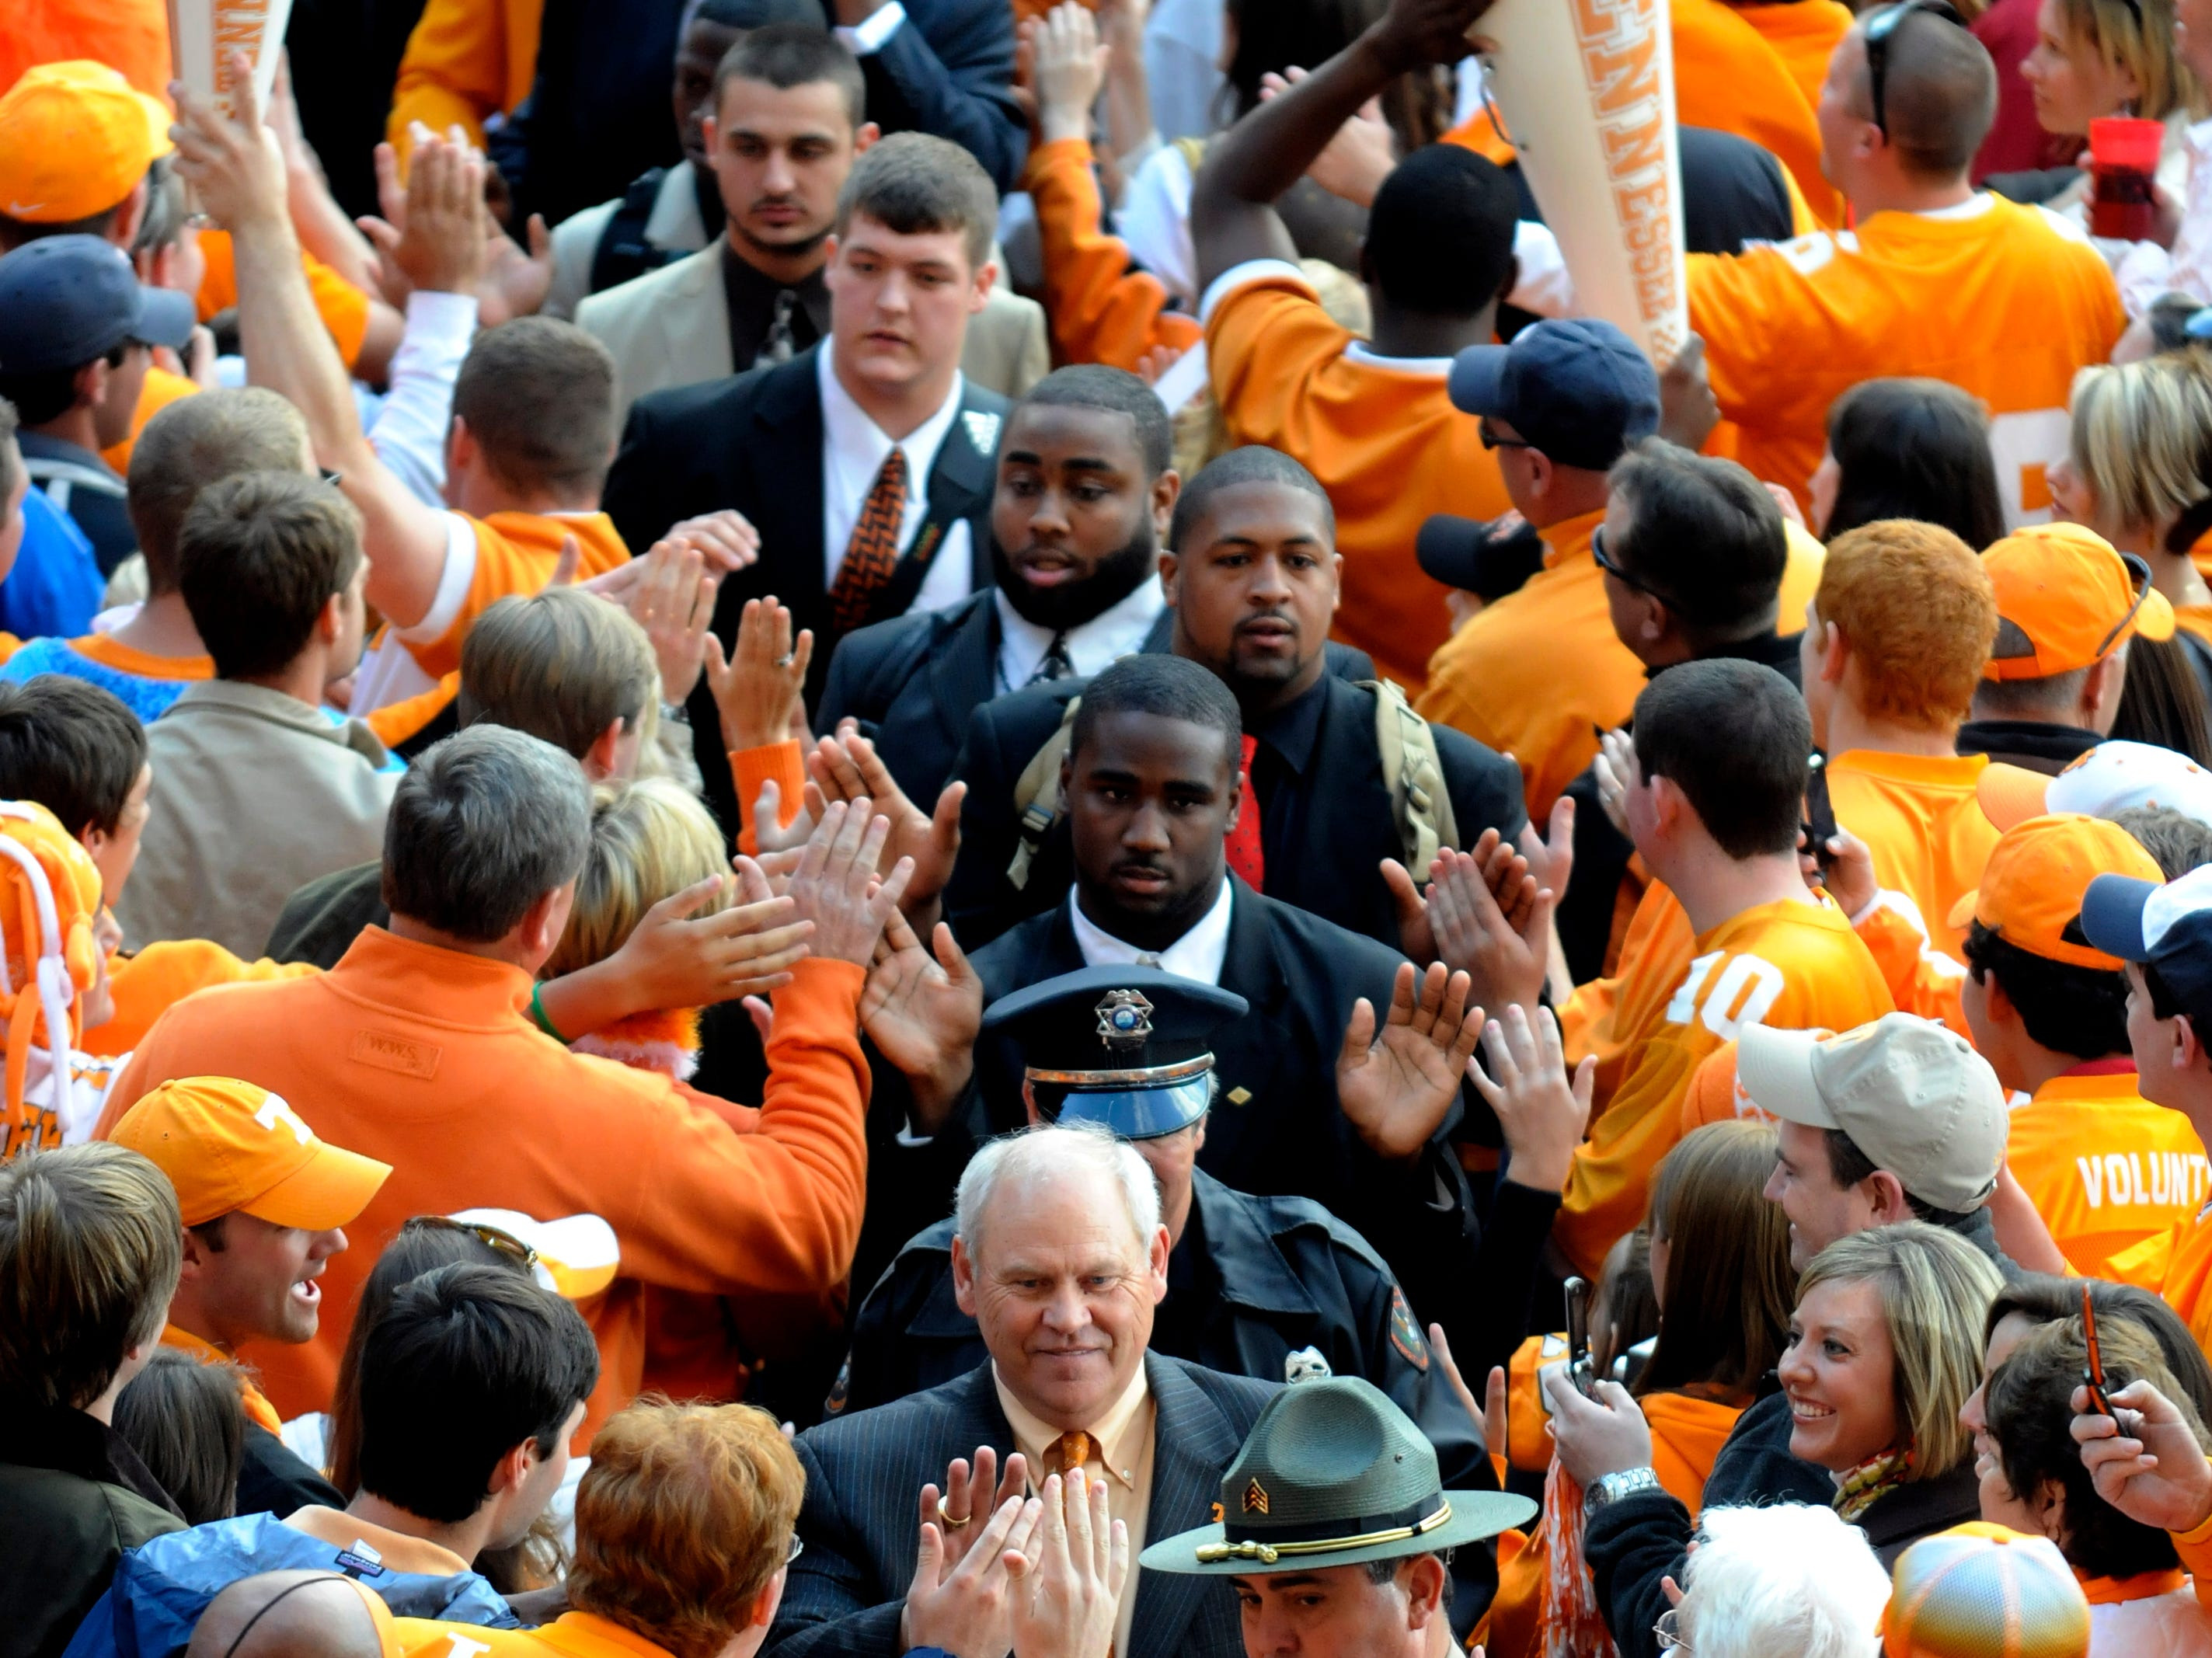 Tennessee Volunteer Head Coach Phillip Fulmer walks through cheering fans during the Vol Walk two hours before their battle with the Crimson Tide of Alabama, Saturday, October 25, 2008 in Neyland Stadium.